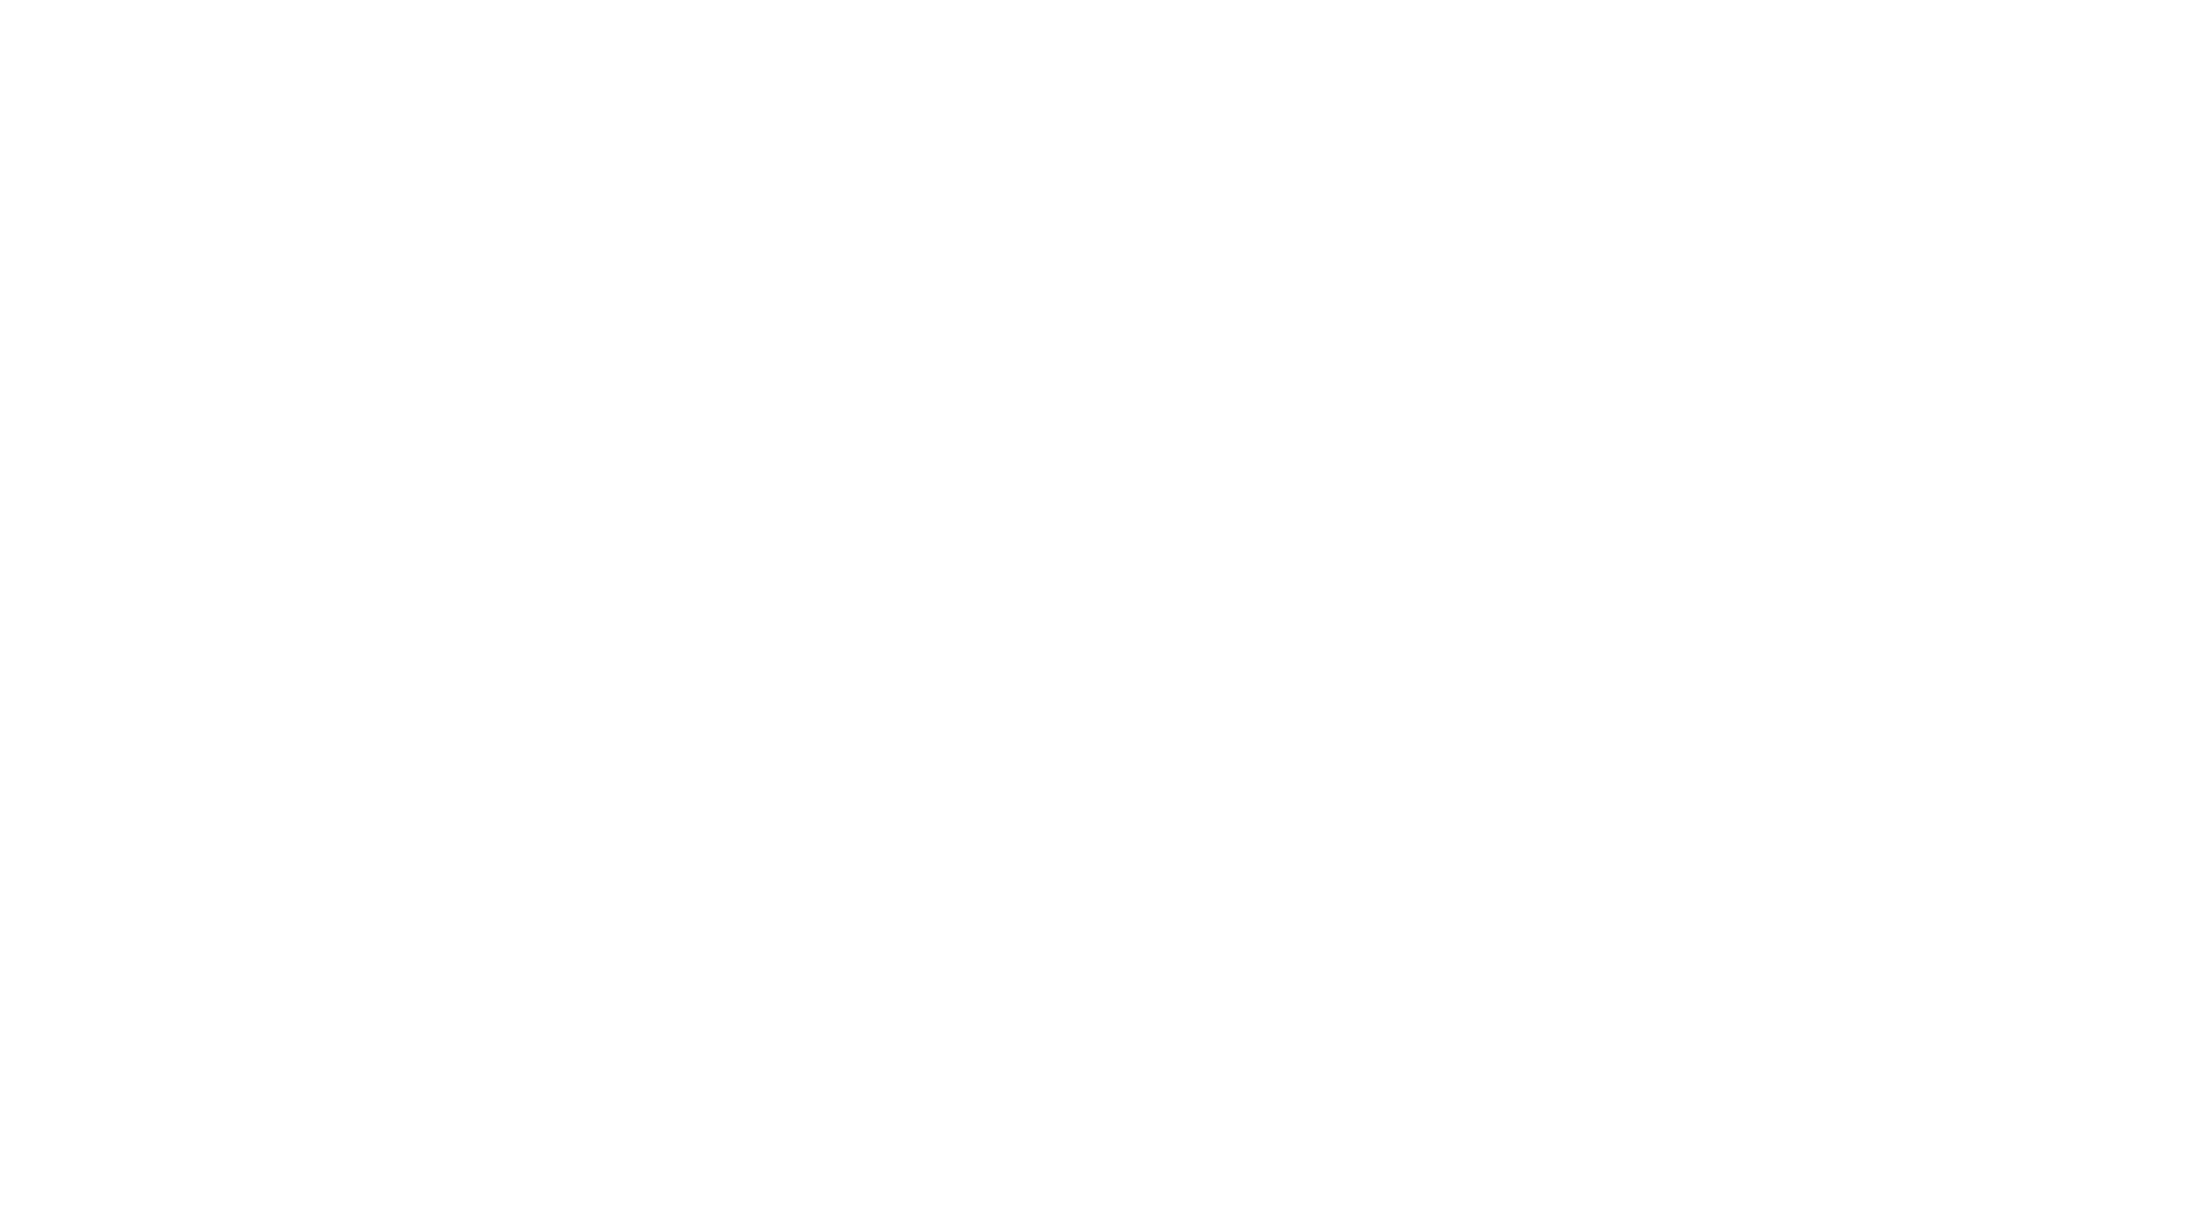 Agent needs and title company needs are coordinated to create a streamlines deposit process